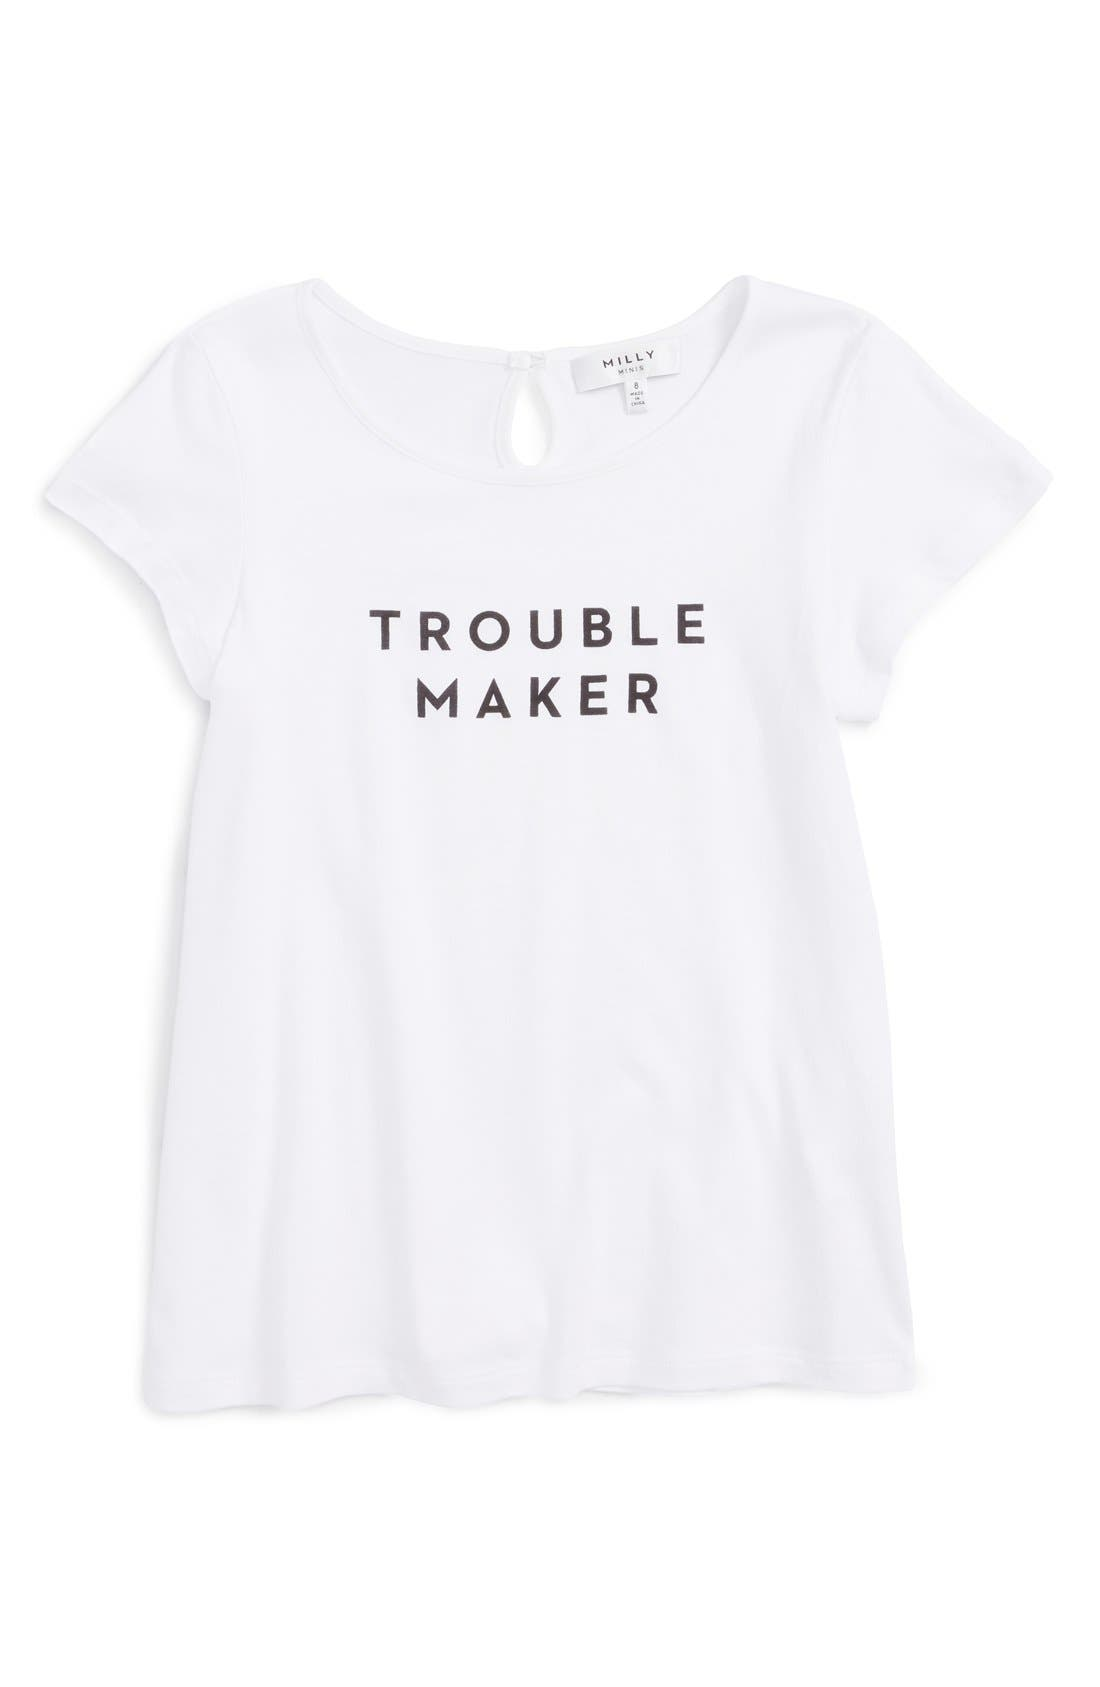 Main Image - Milly Minis 'Trouble Maker' Graphic Tee (Big Girls)